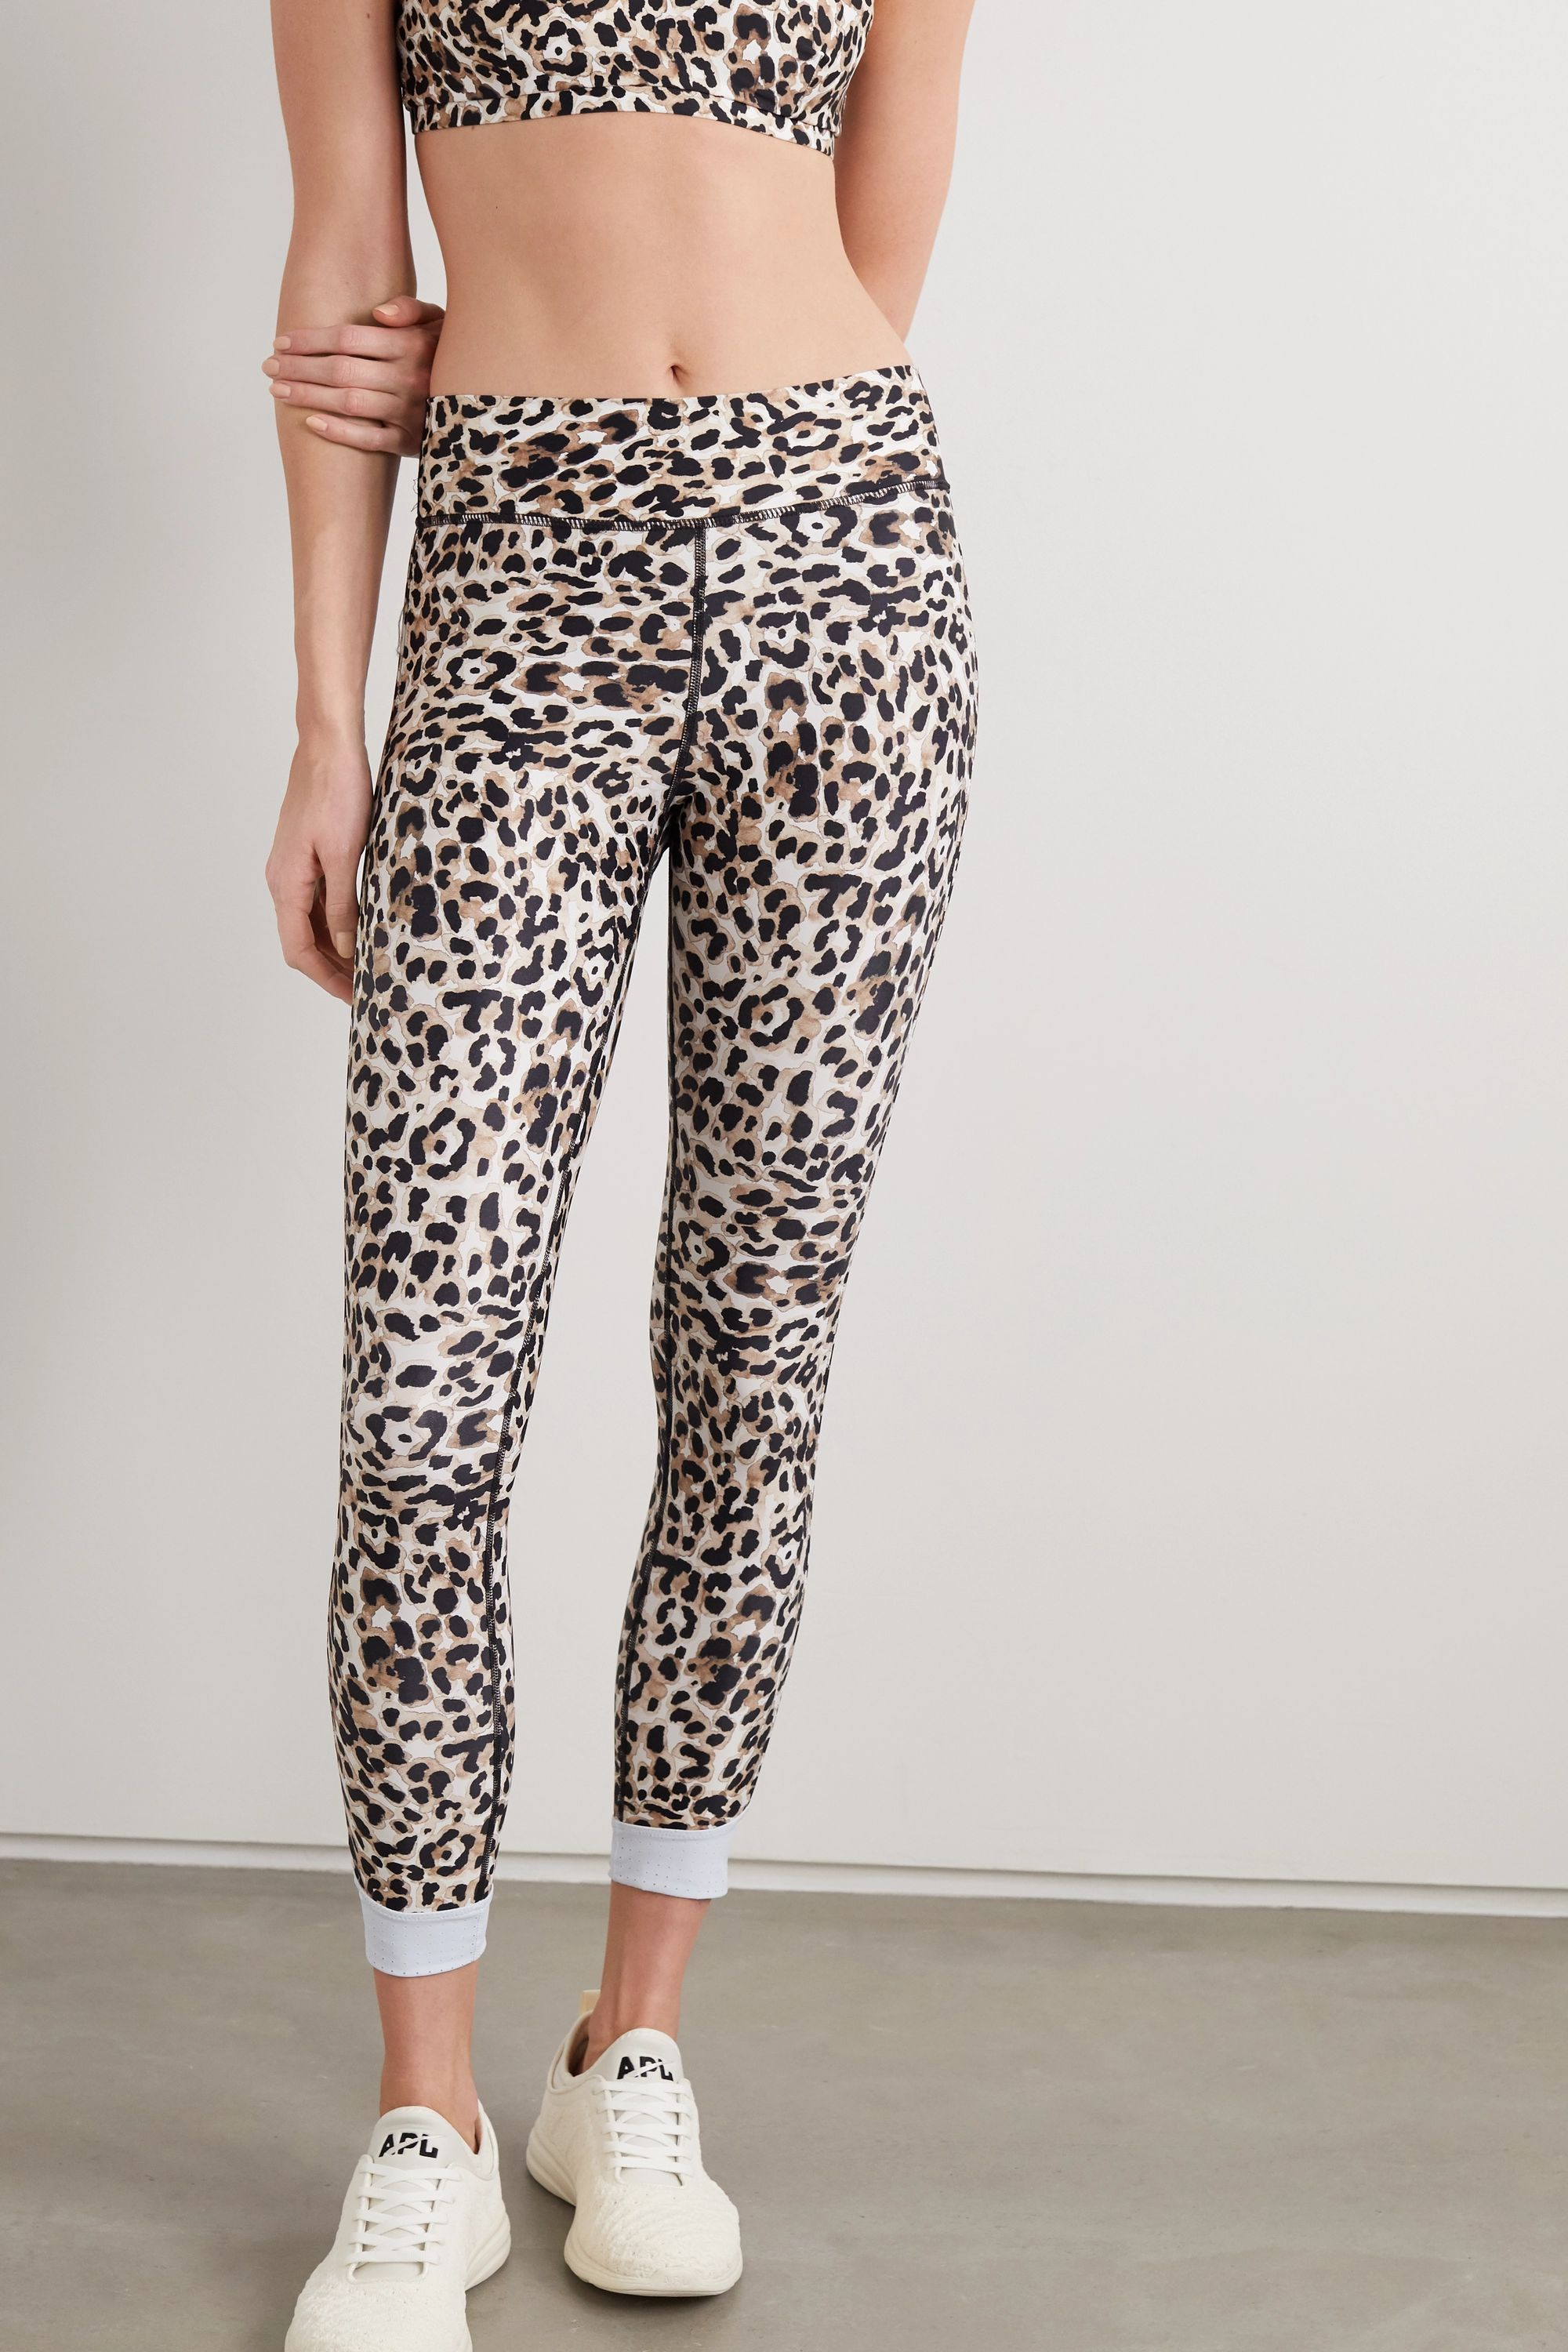 The Upside Water Leopard cropped printed stretch leggings